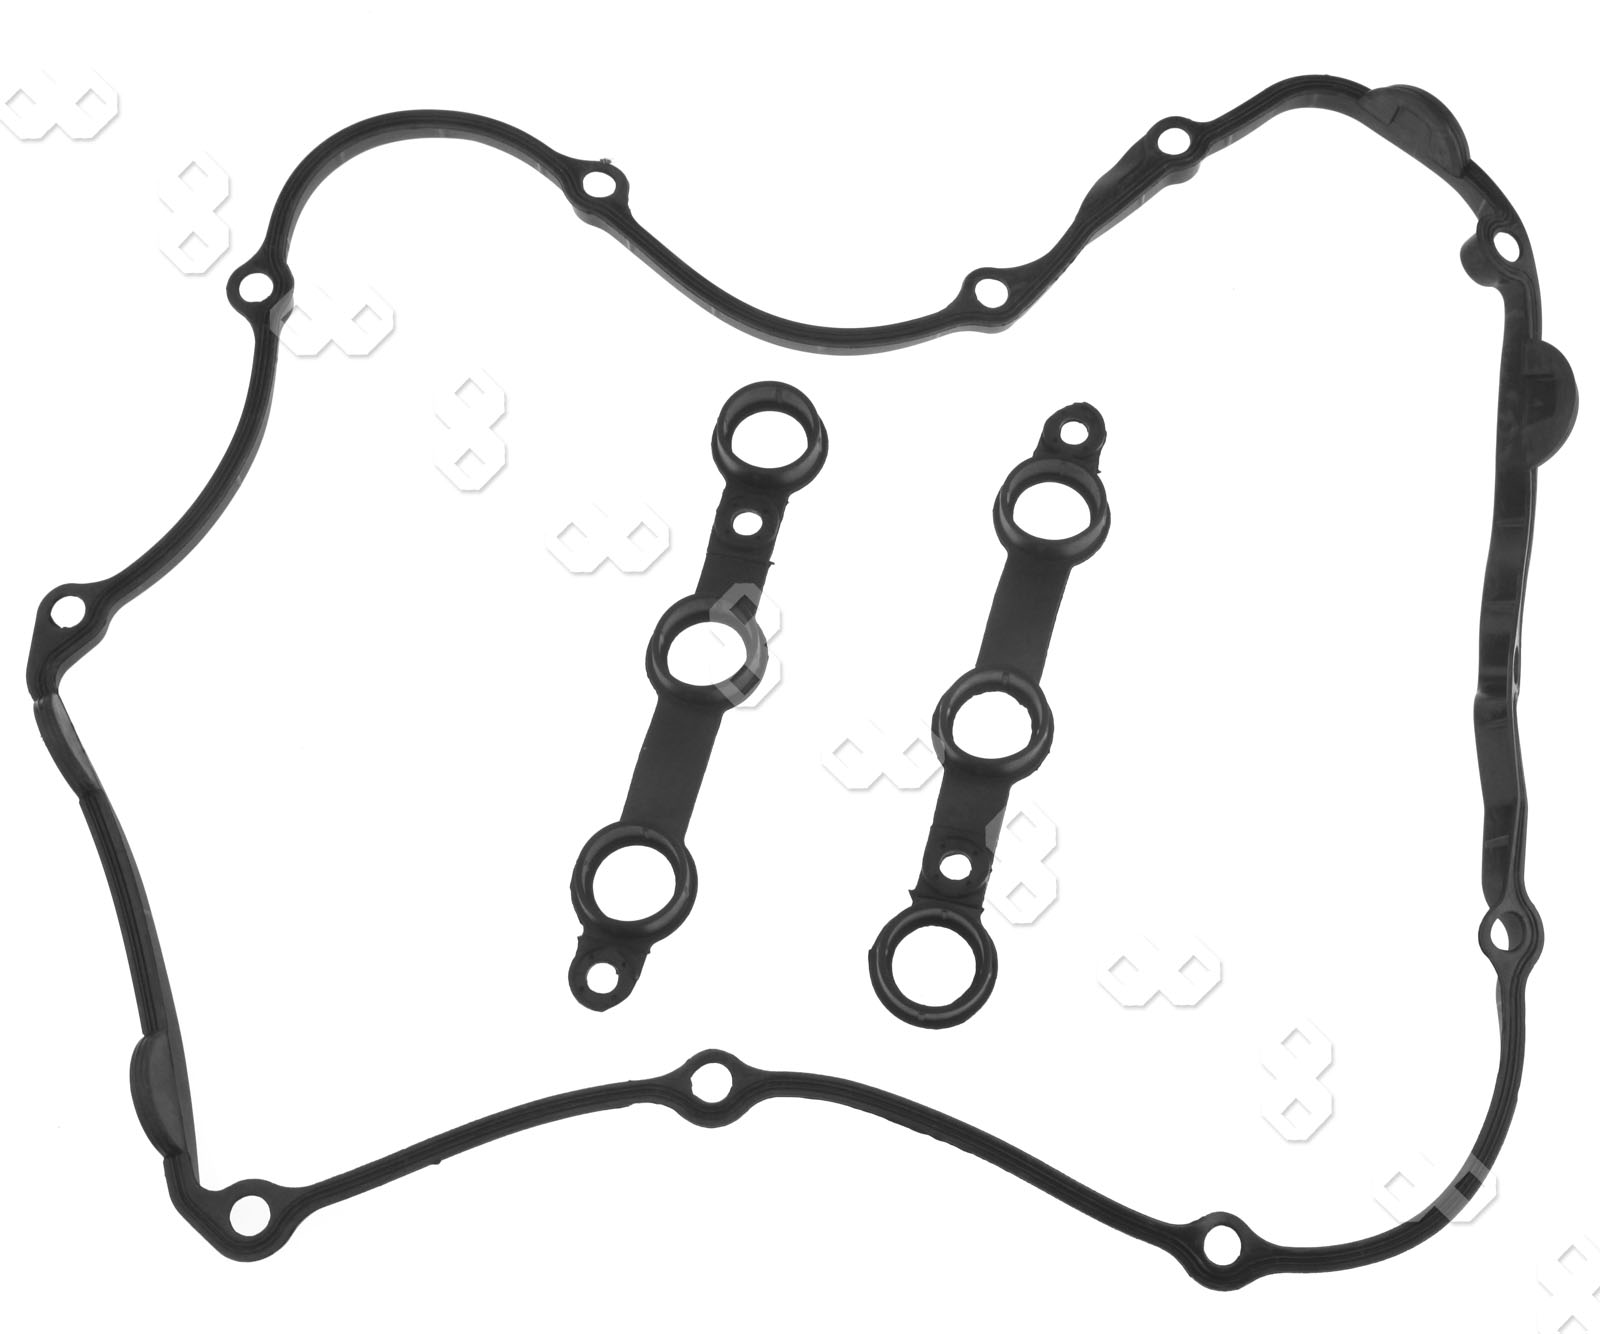 2012 Bmw X5 M Head Gasket: Cylinder Head Valve Rocker Cam Cover Gasket For BMW 323i